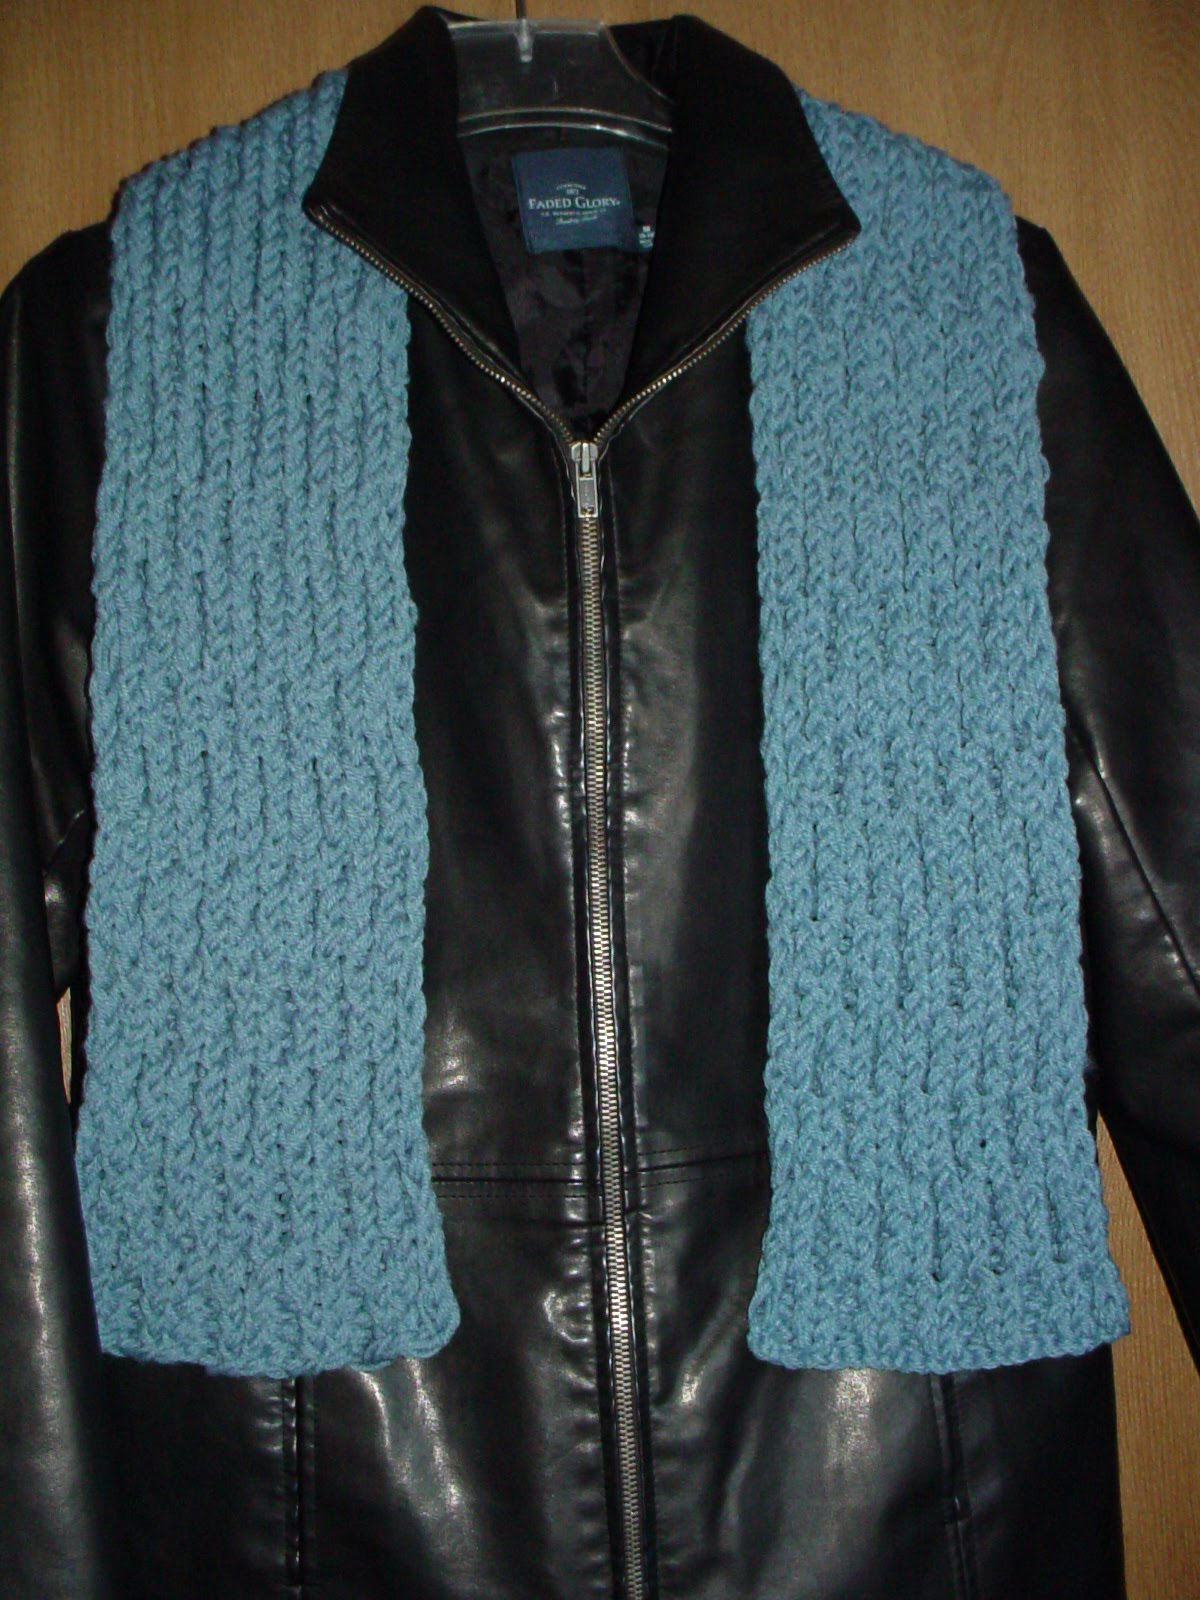 http://www.squidoo.com/making-the-honeycomb-stitch-on-the-knifty-knitter-loom